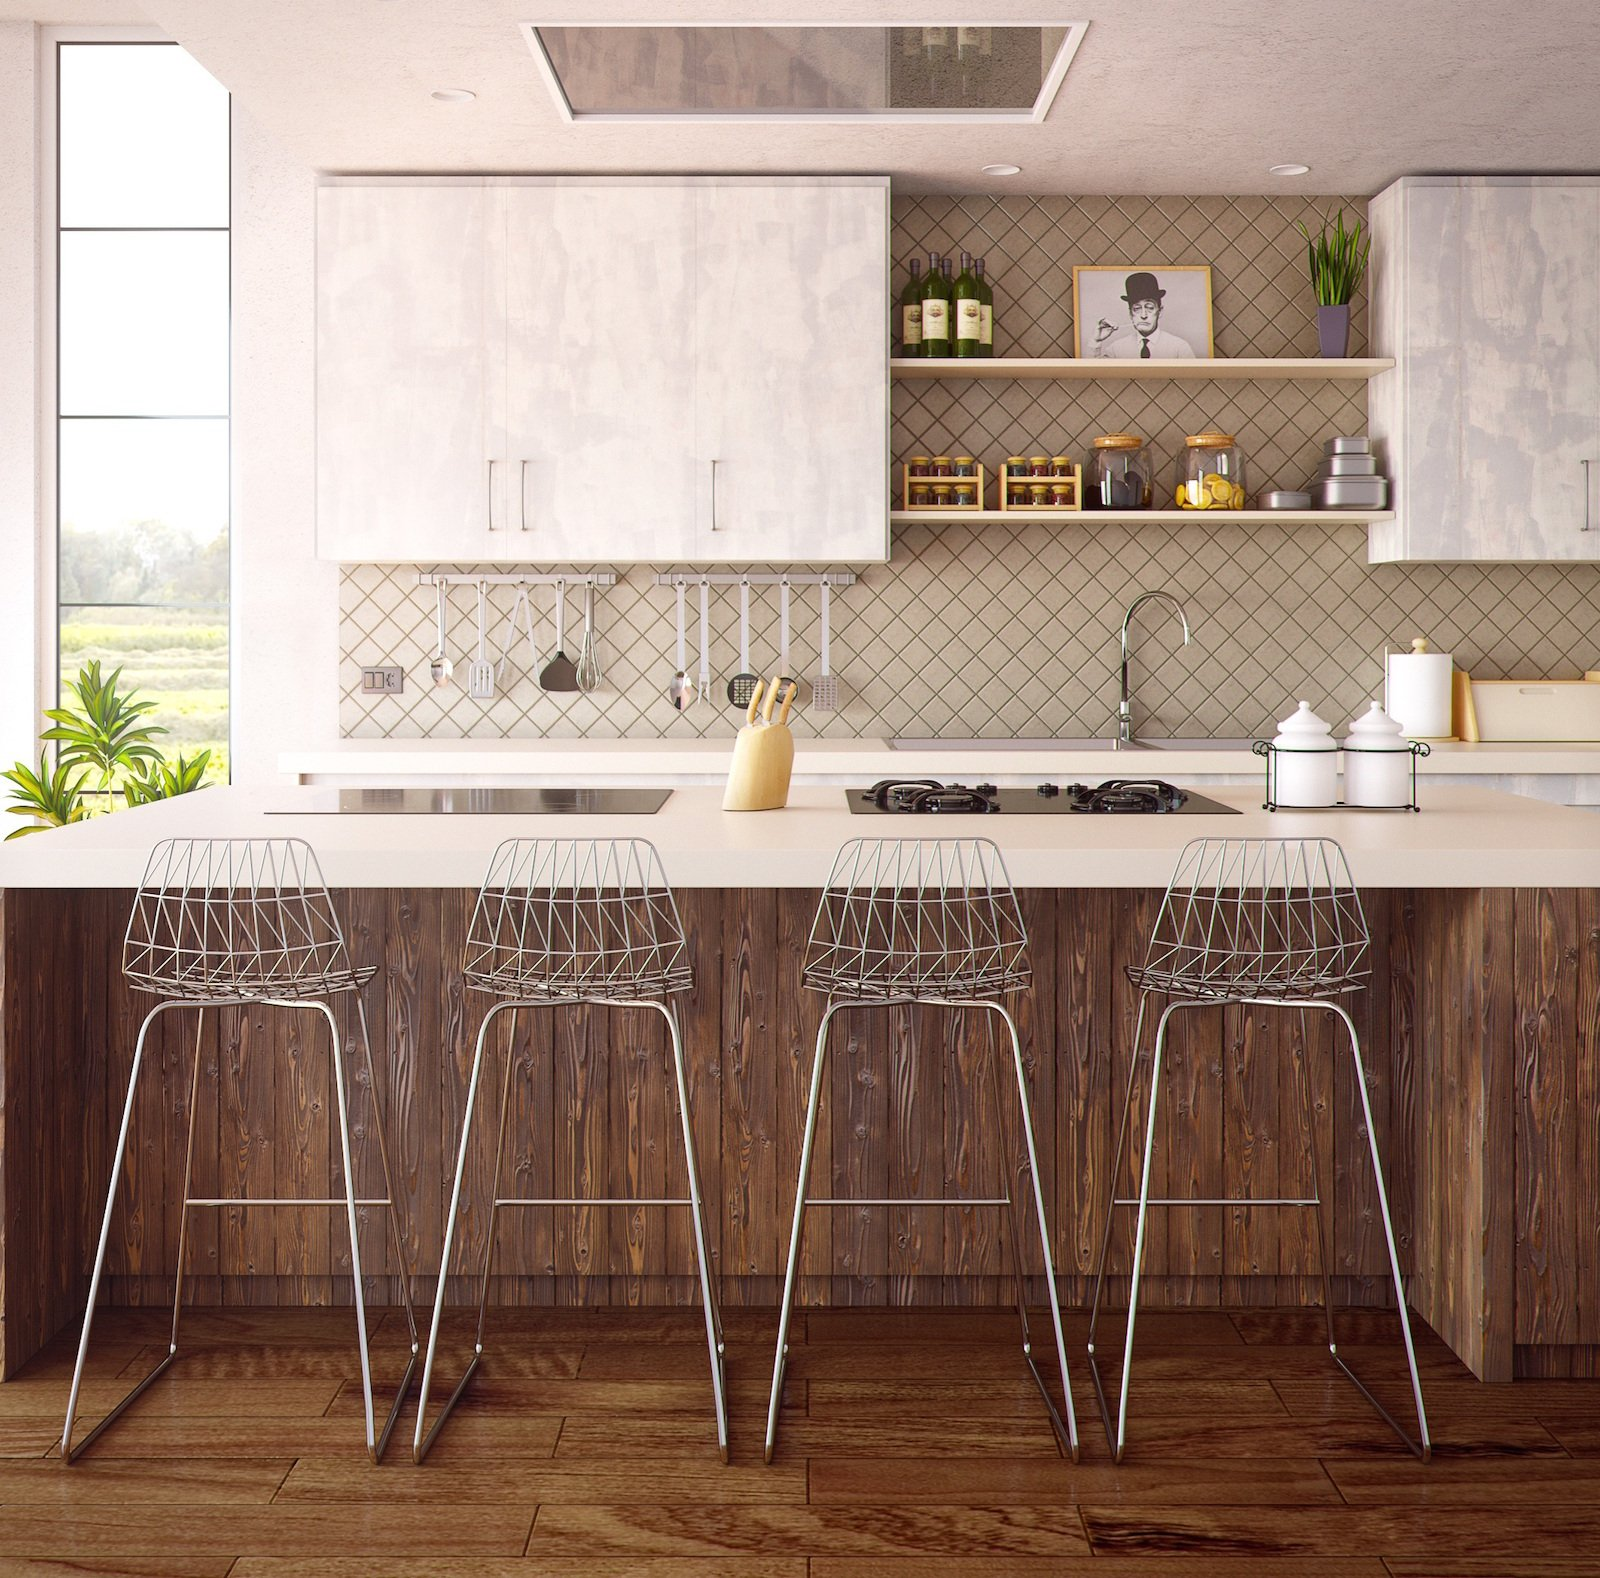 Counter To Ceiling Backsplashes Open Shelving Is One Of The Latest Kitchen Trends